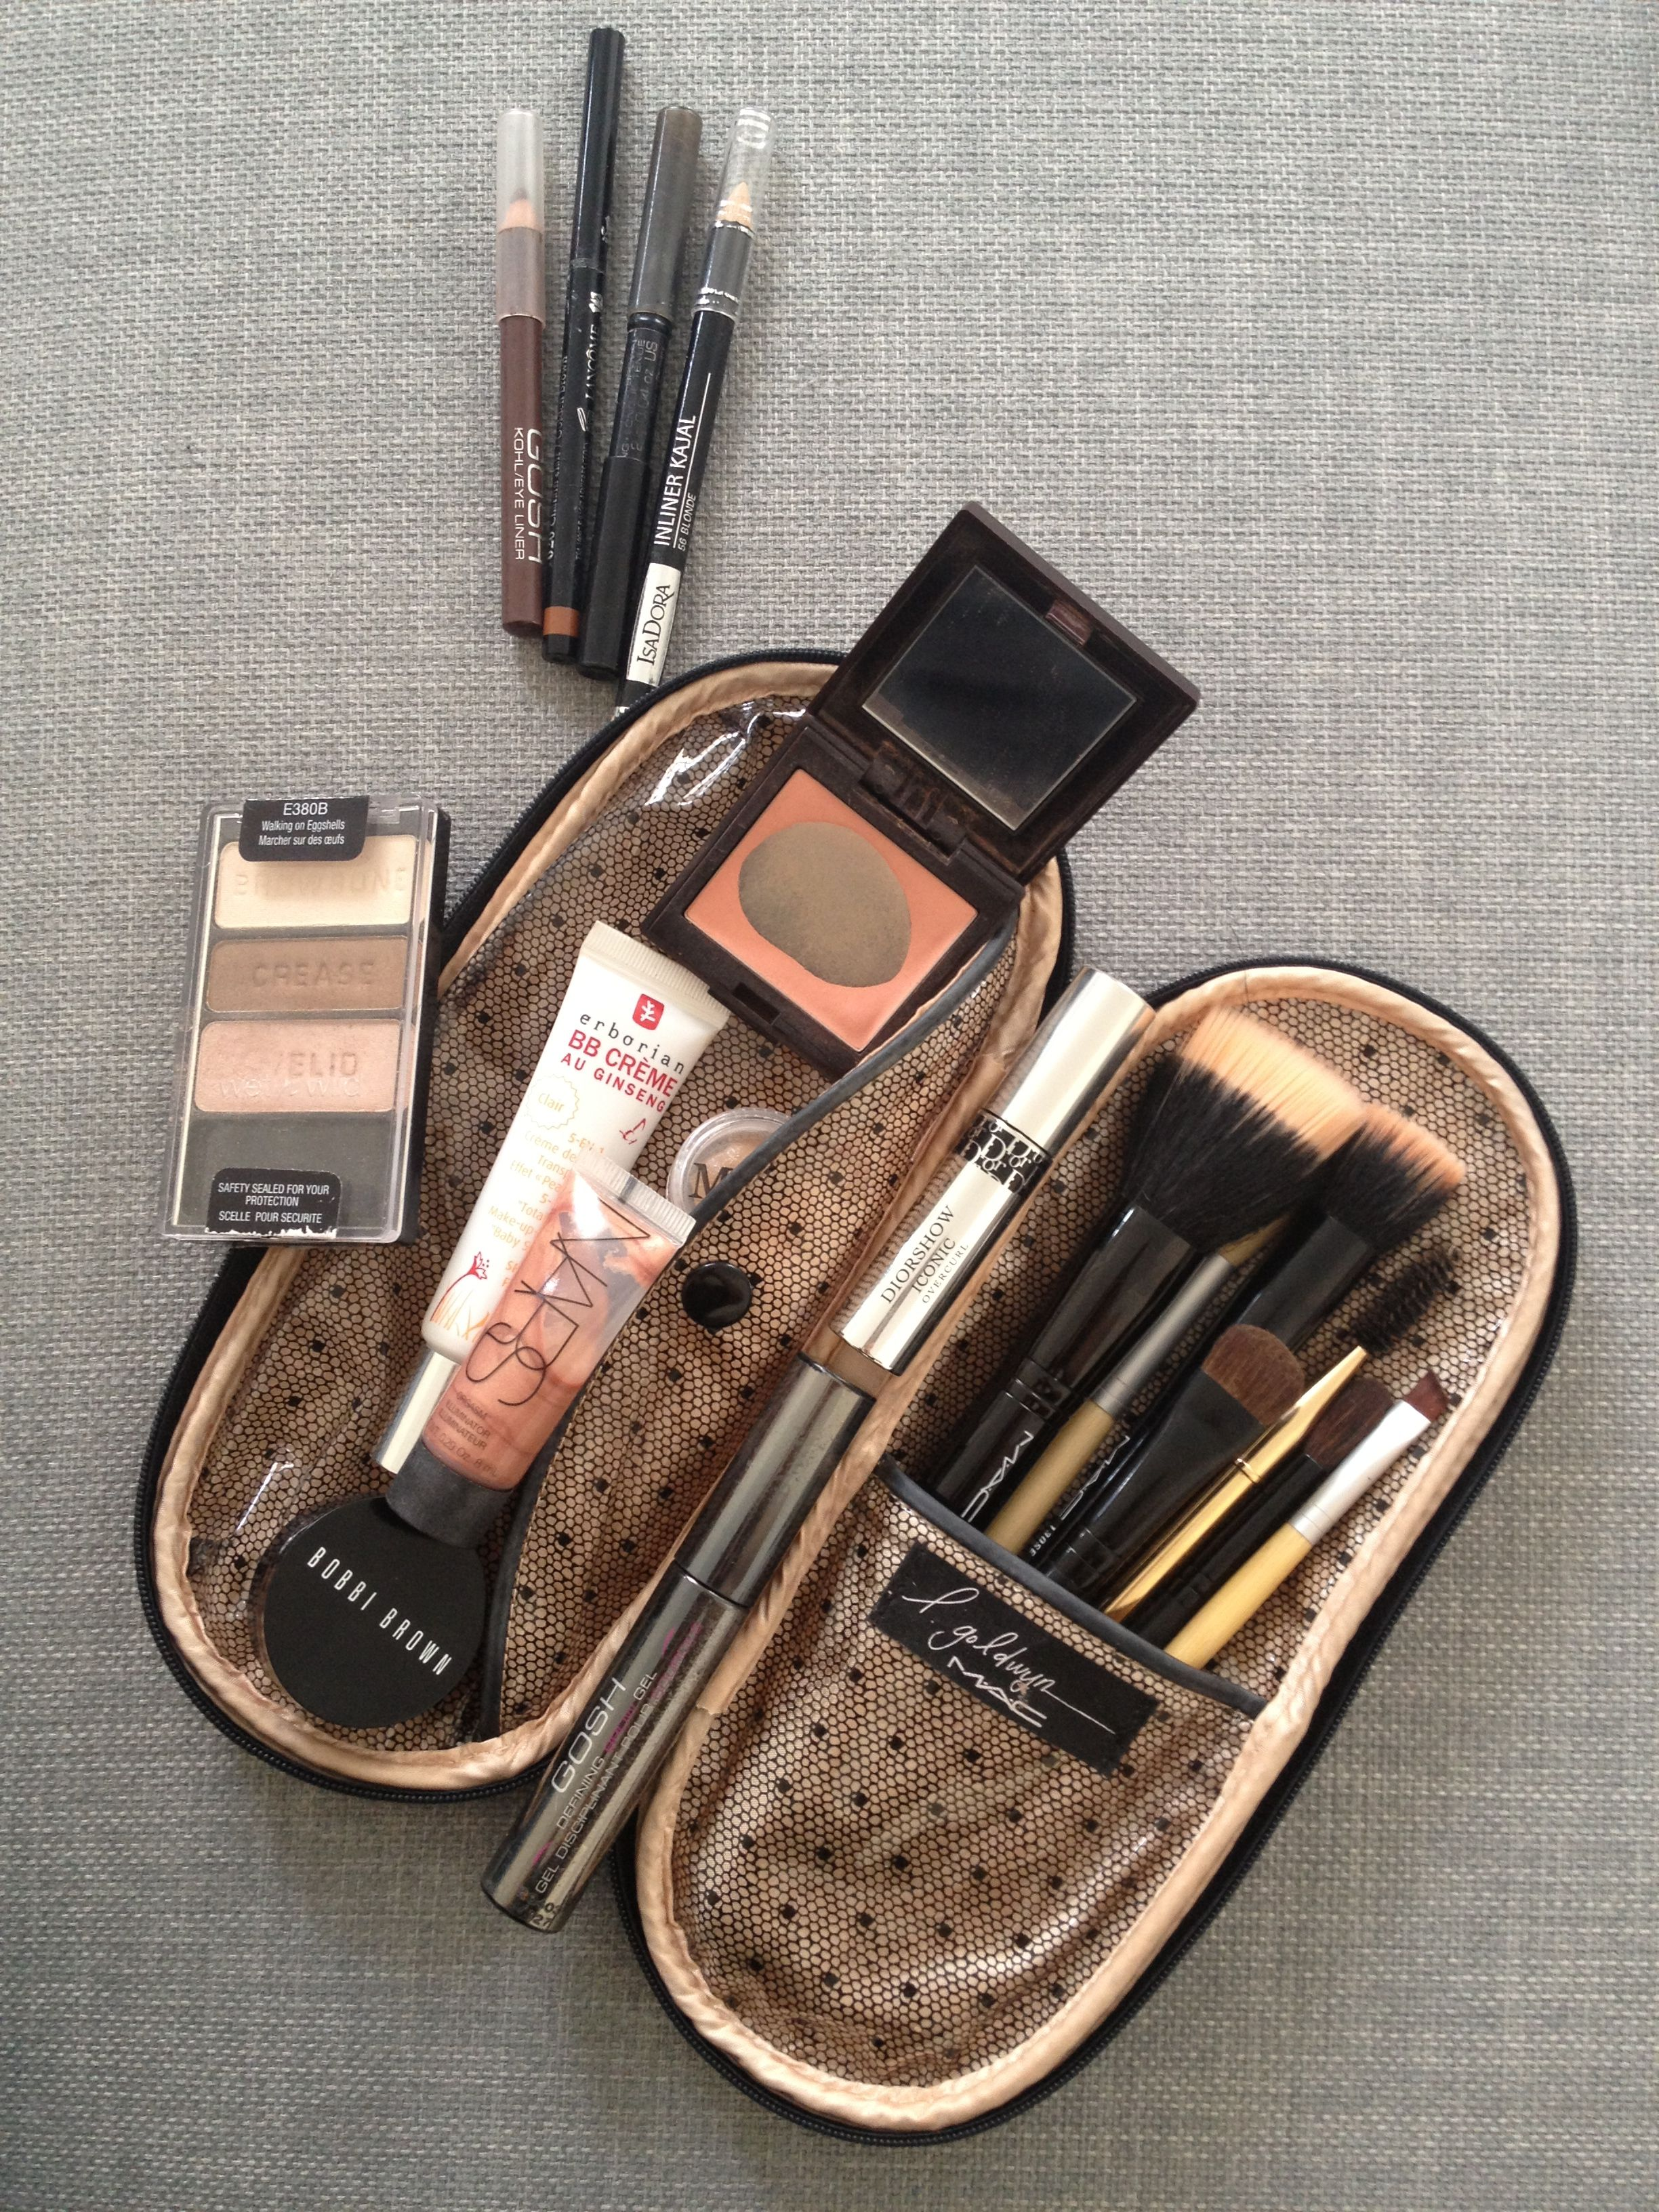 My Everyday Makeup Bag Makeup essentials, Everyday